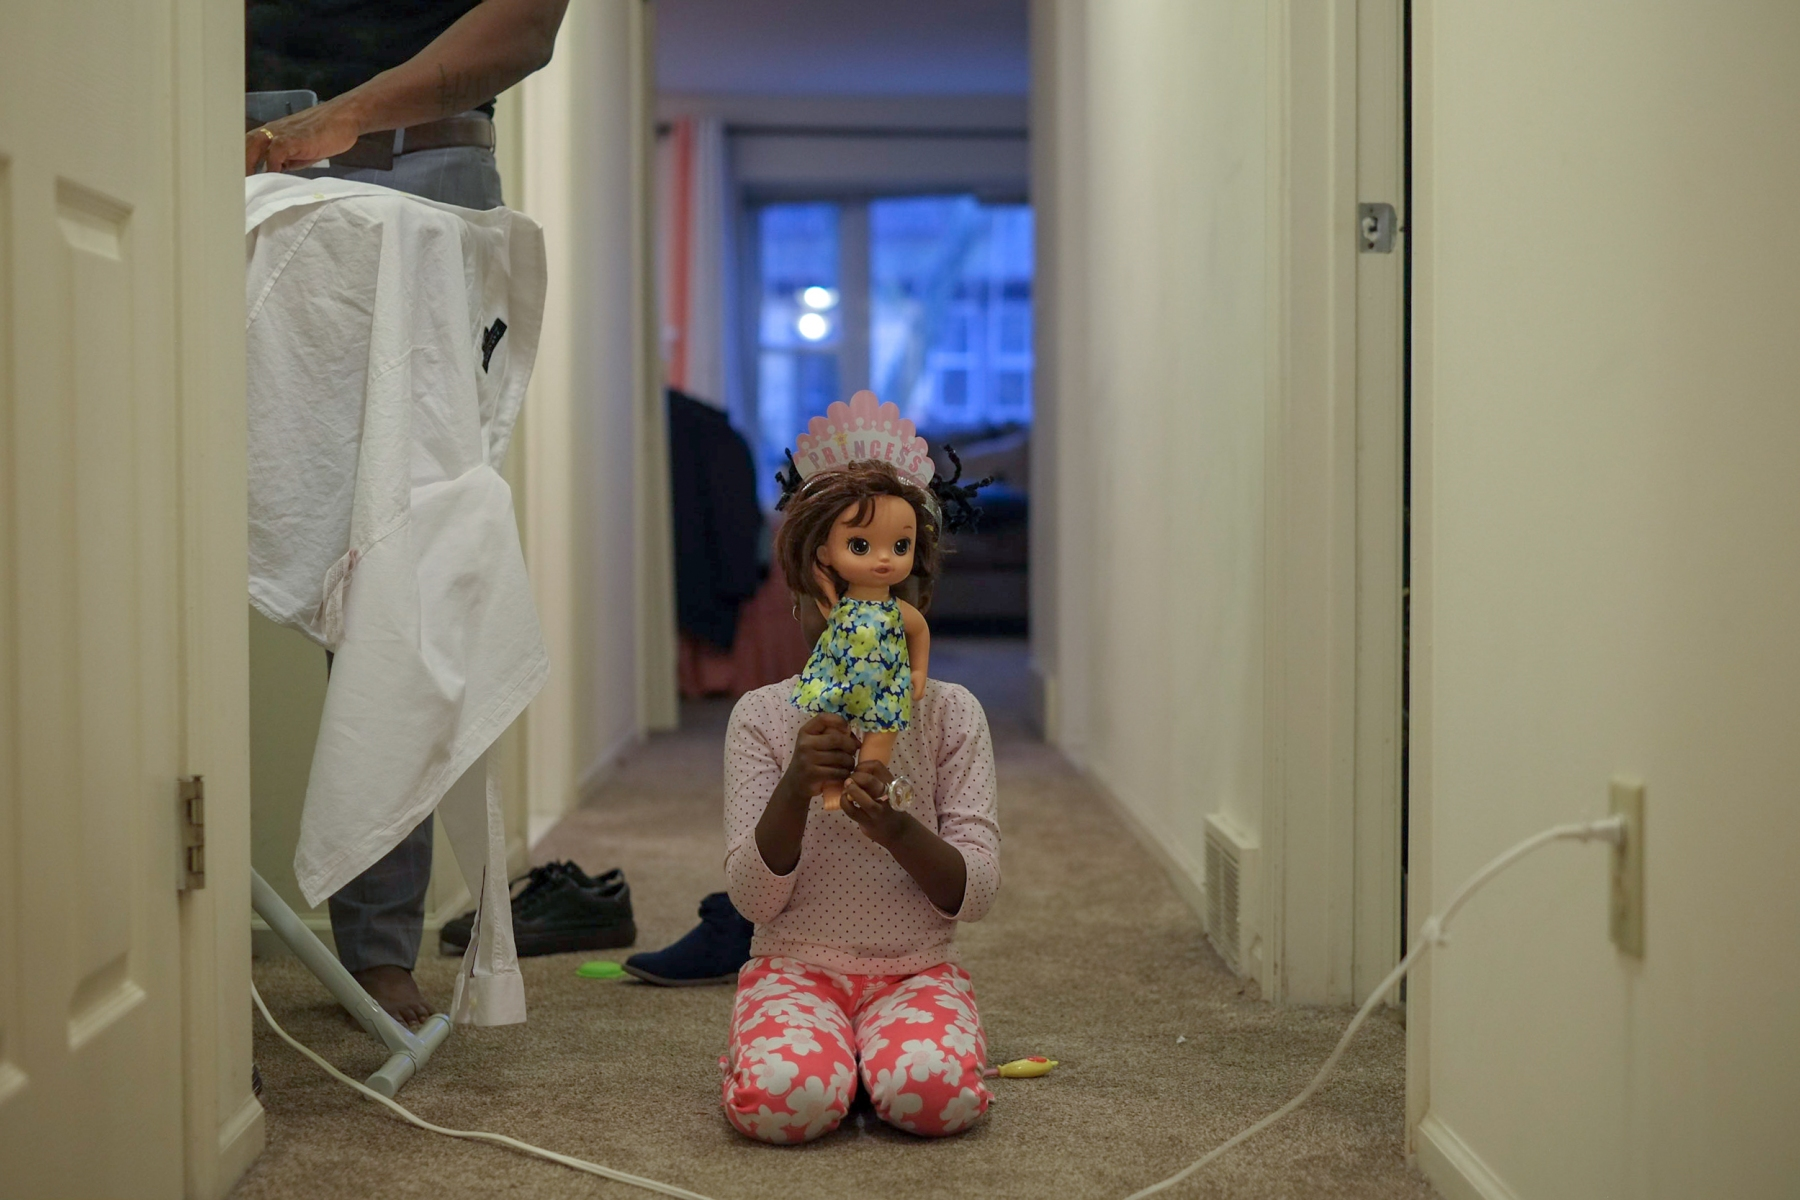 Kenza, 5, one of Mamba Hamissi and Nadia Nijimbere's twin daughters, plays with a doll in their apartment in Grosse Pointe Park, Mich. Nadia fled Burundi in 2013 when she was violently targeted for her work with a human rights organization. Nadia chose to go to Detroit, a city she heard about because of a shelter called Freedom House which provided pro-bono housing, social, and legal services to asylum-seekers. By the time Mamba's visa was finally accepted in 2015, he had missed Nadia's pregnancy, the twins' birth, and the first two years of their lives.